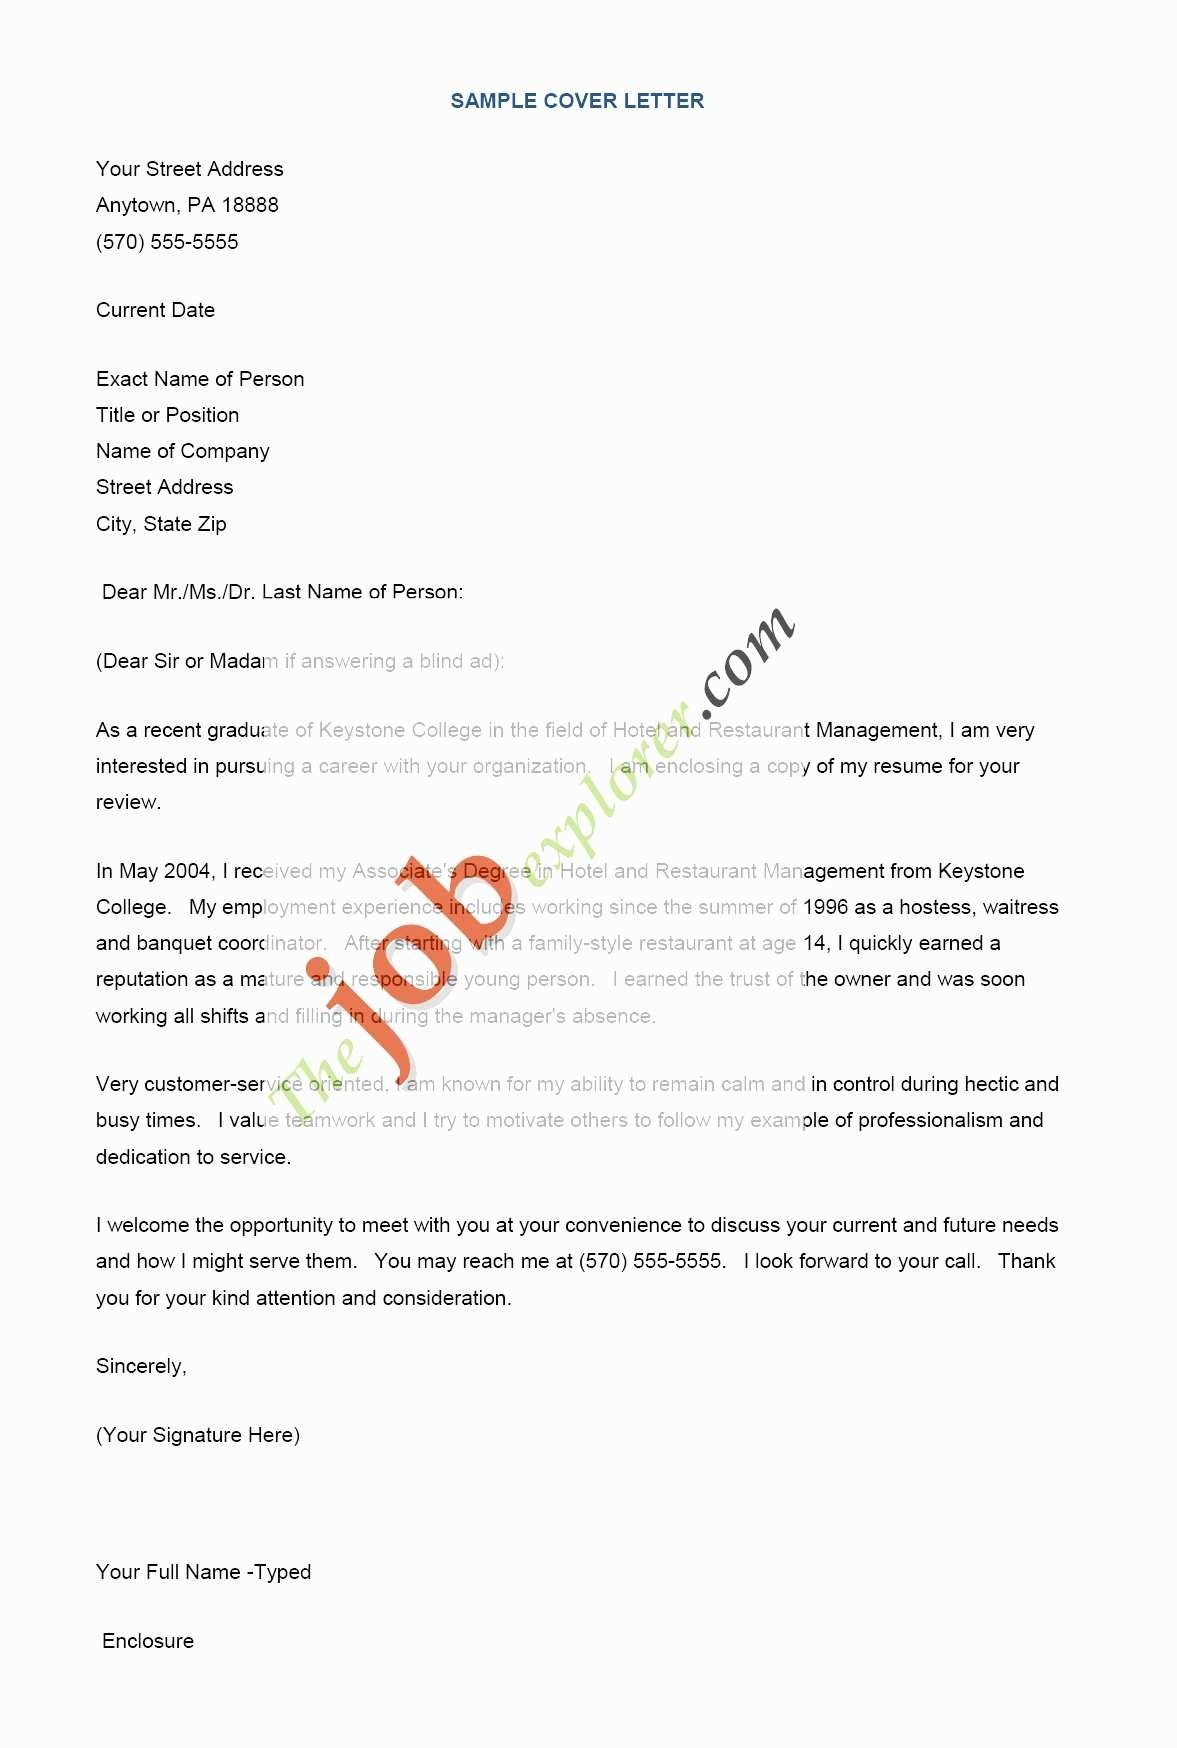 Free Template for A Cover Letter for A Resume - Awesome Free Cover Letter Templates